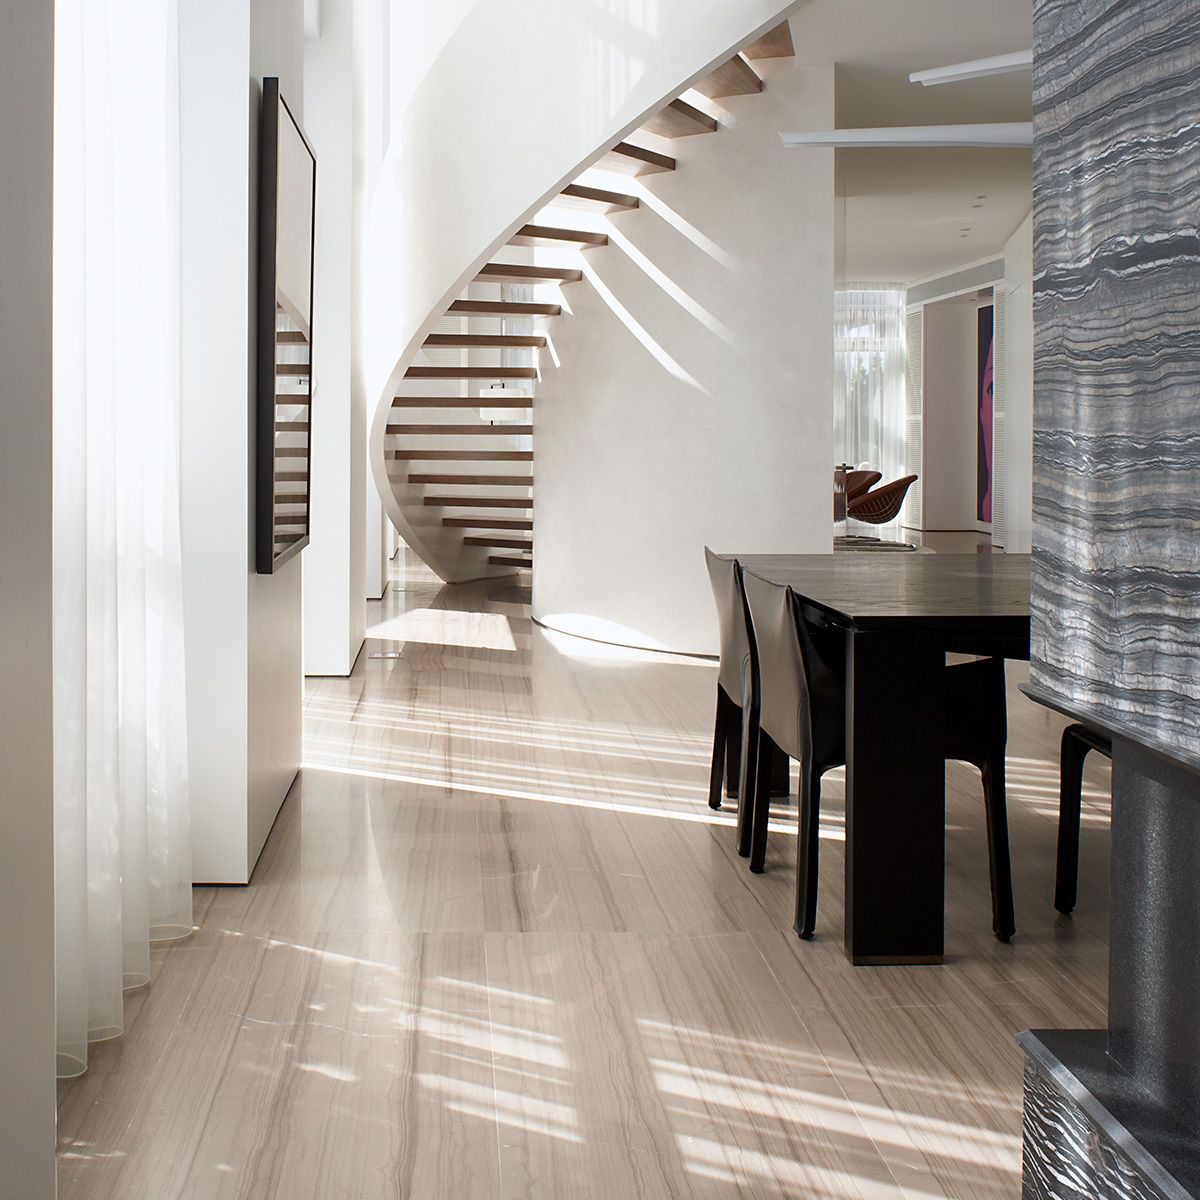 Artistic Stairs Canada: Interior Design Firm Specializing In Luxury Hospitality